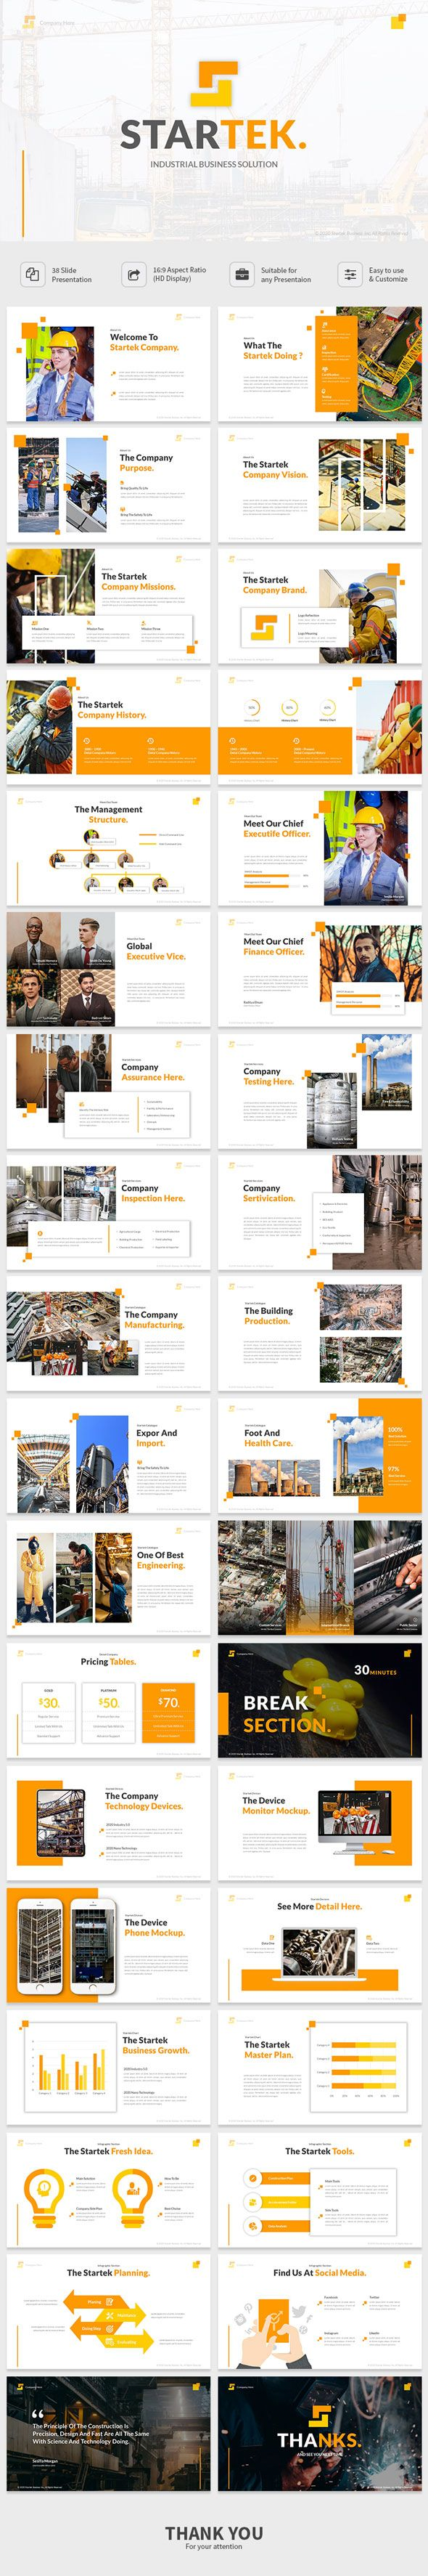 Startek  Keynote Business Solution Presentation Keynote presentation template